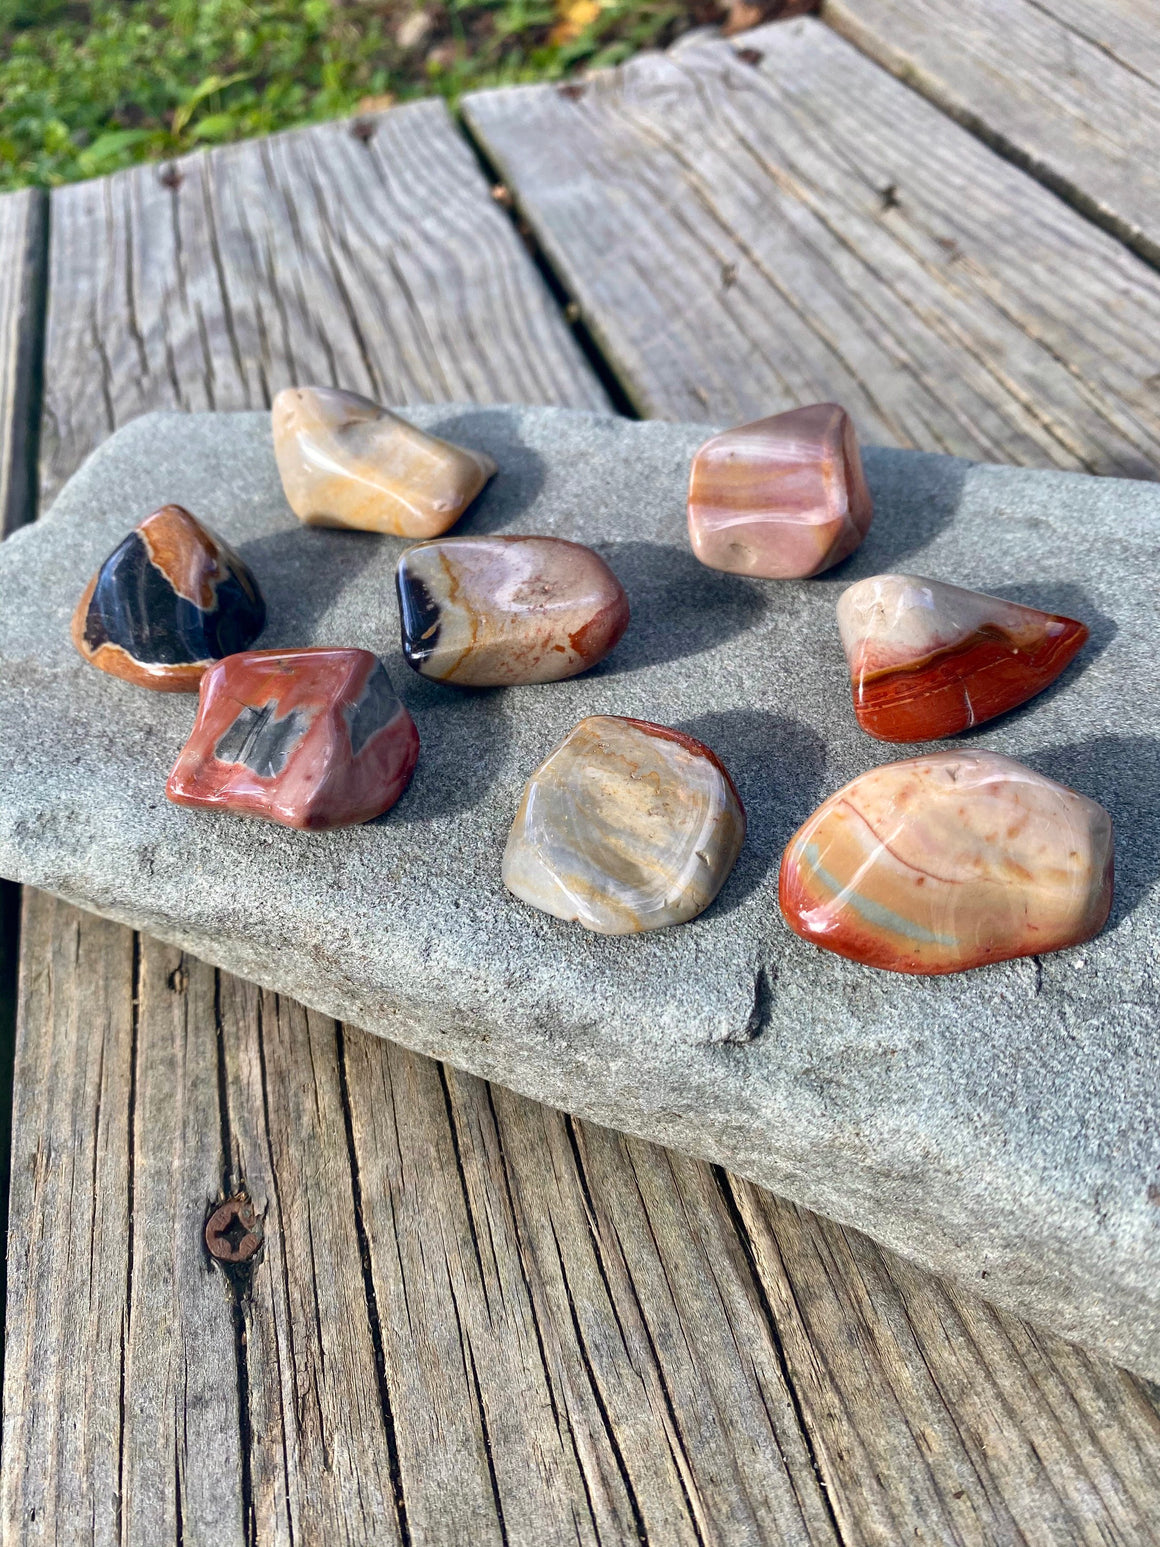 Desert Jasper Tumbled Stone / Natural Stone / Polychrome Jasper Crystal / Polished GemStone Supportive Nurturing Root Chakra Crystal